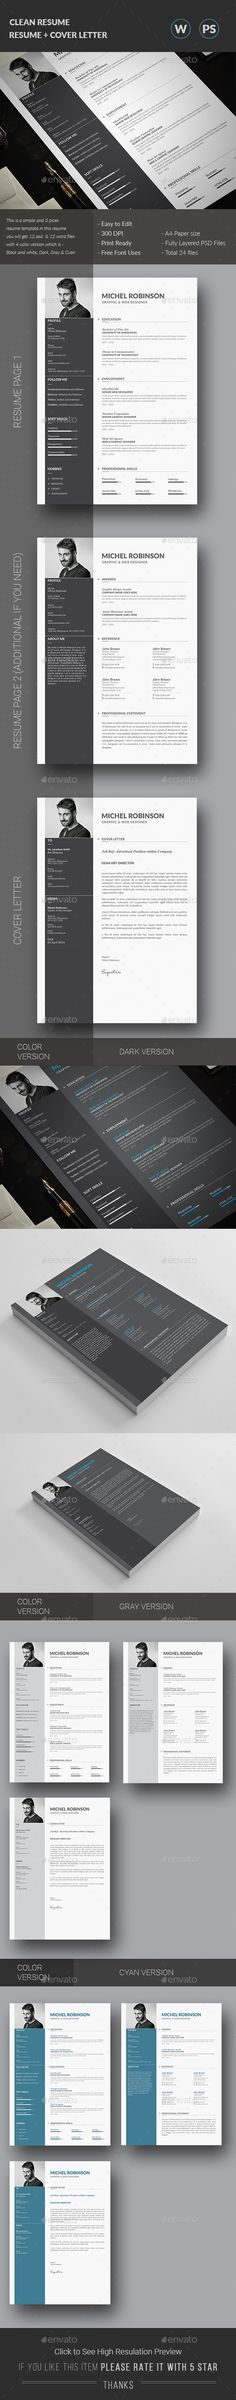 Resume — Photoshop PSD #indesign #doc • Available here → https://graphicriver.net/item/resume/15607938?ref=pxcr